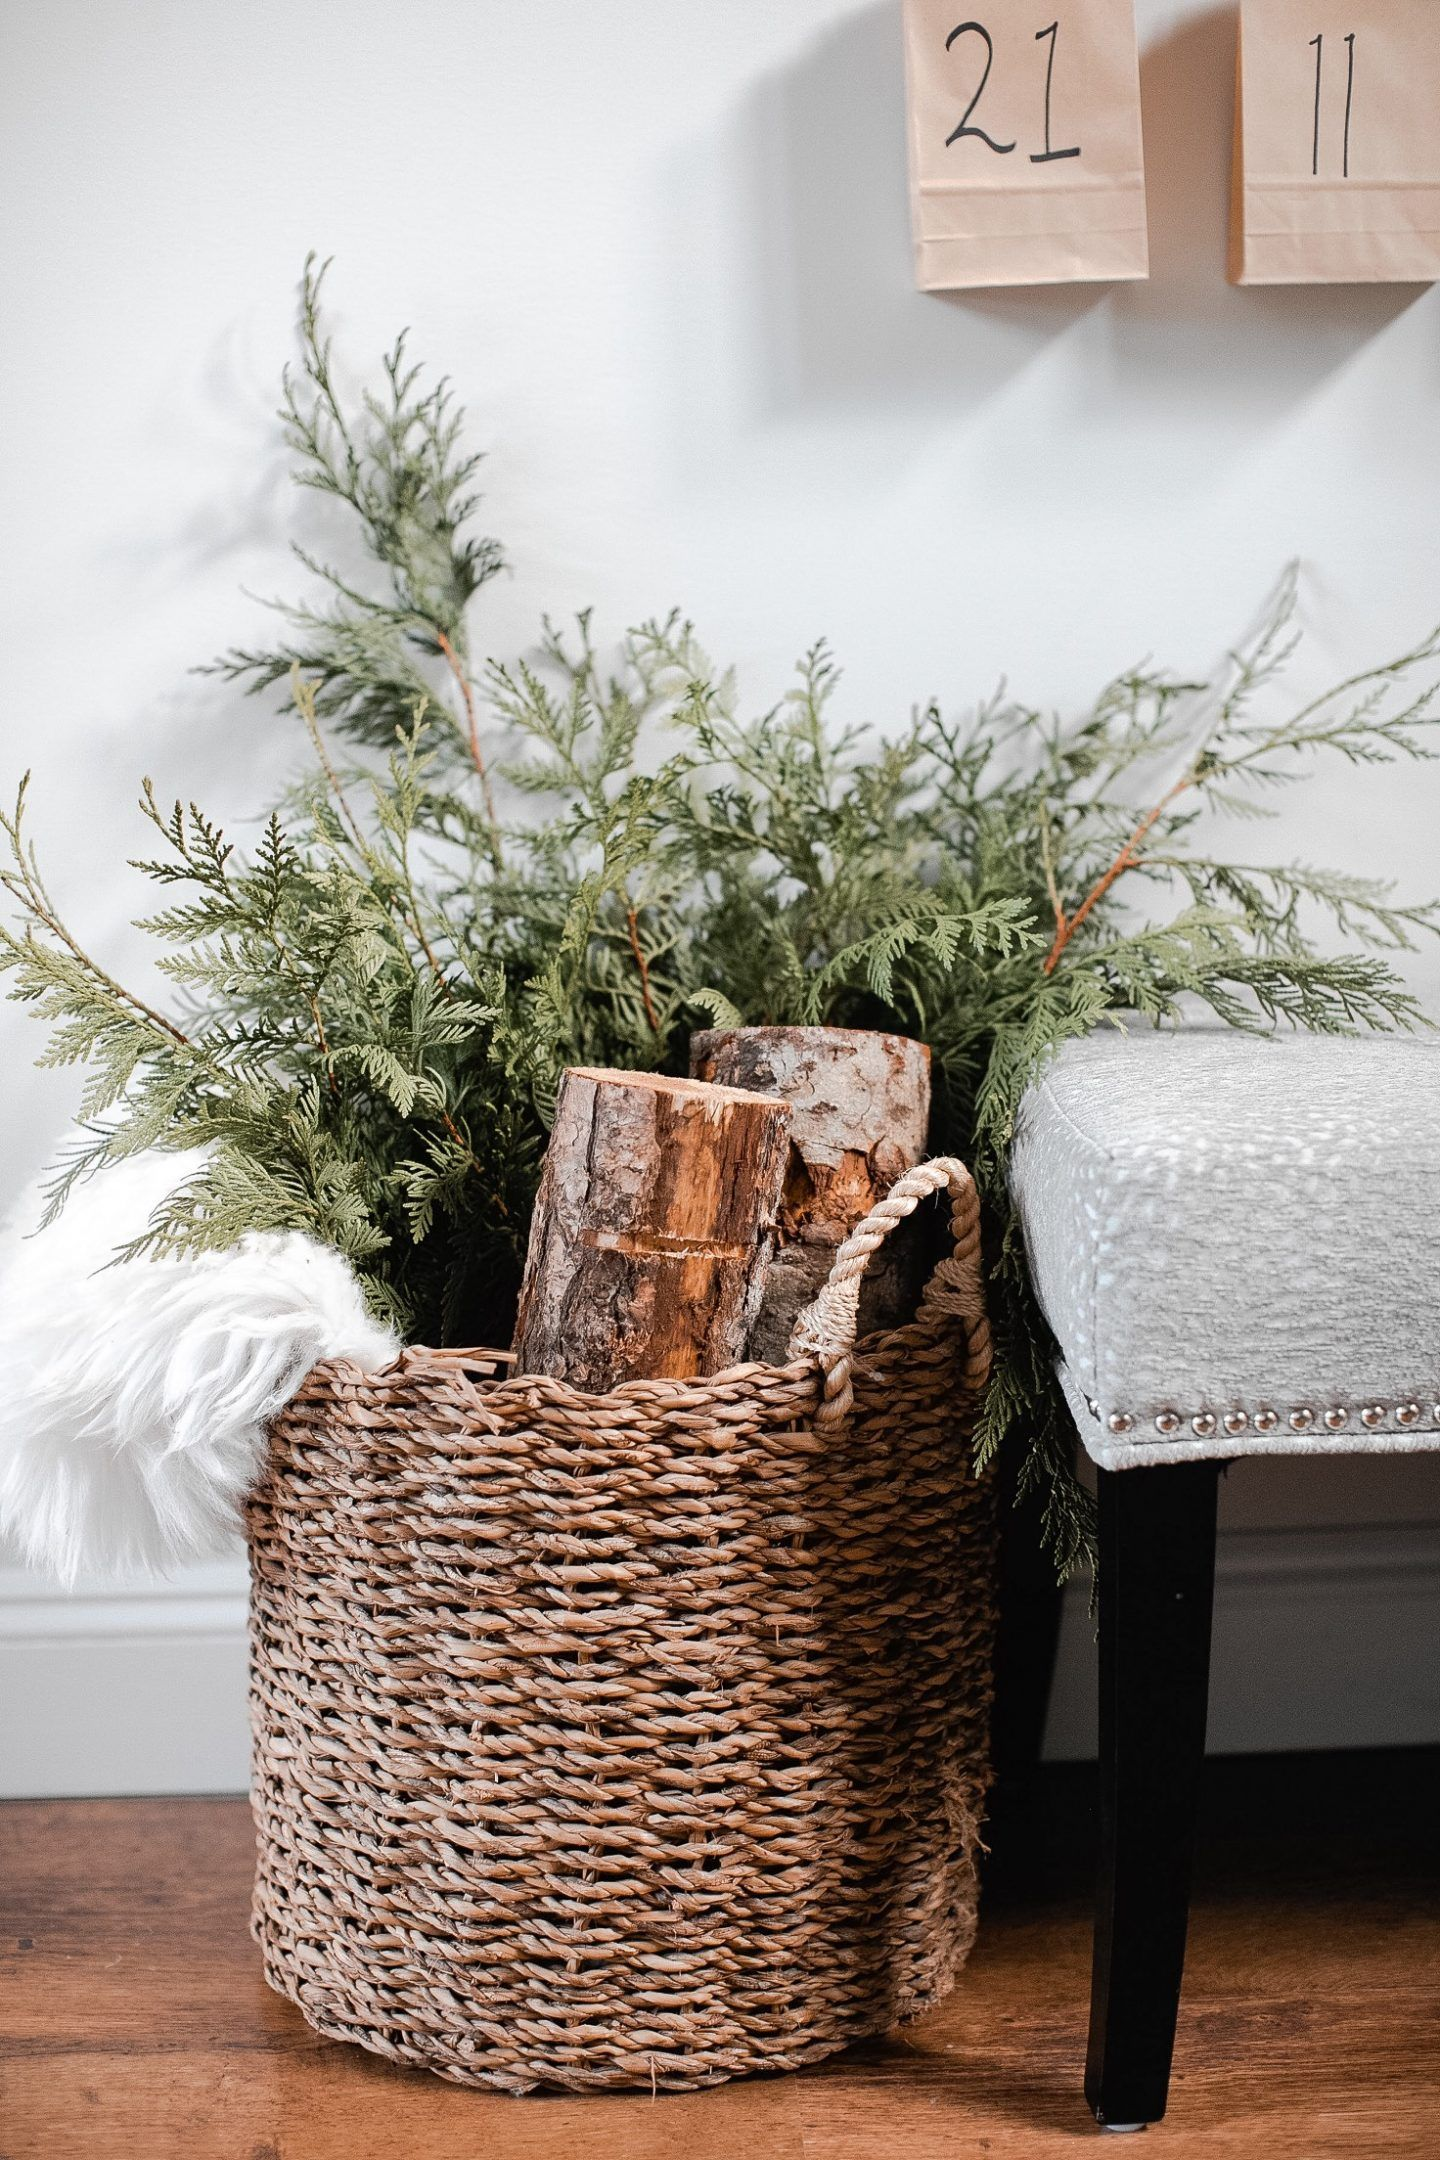 Decorate for Christmas using Scandinavian and Modern farmhouse design concepts #winterdecor